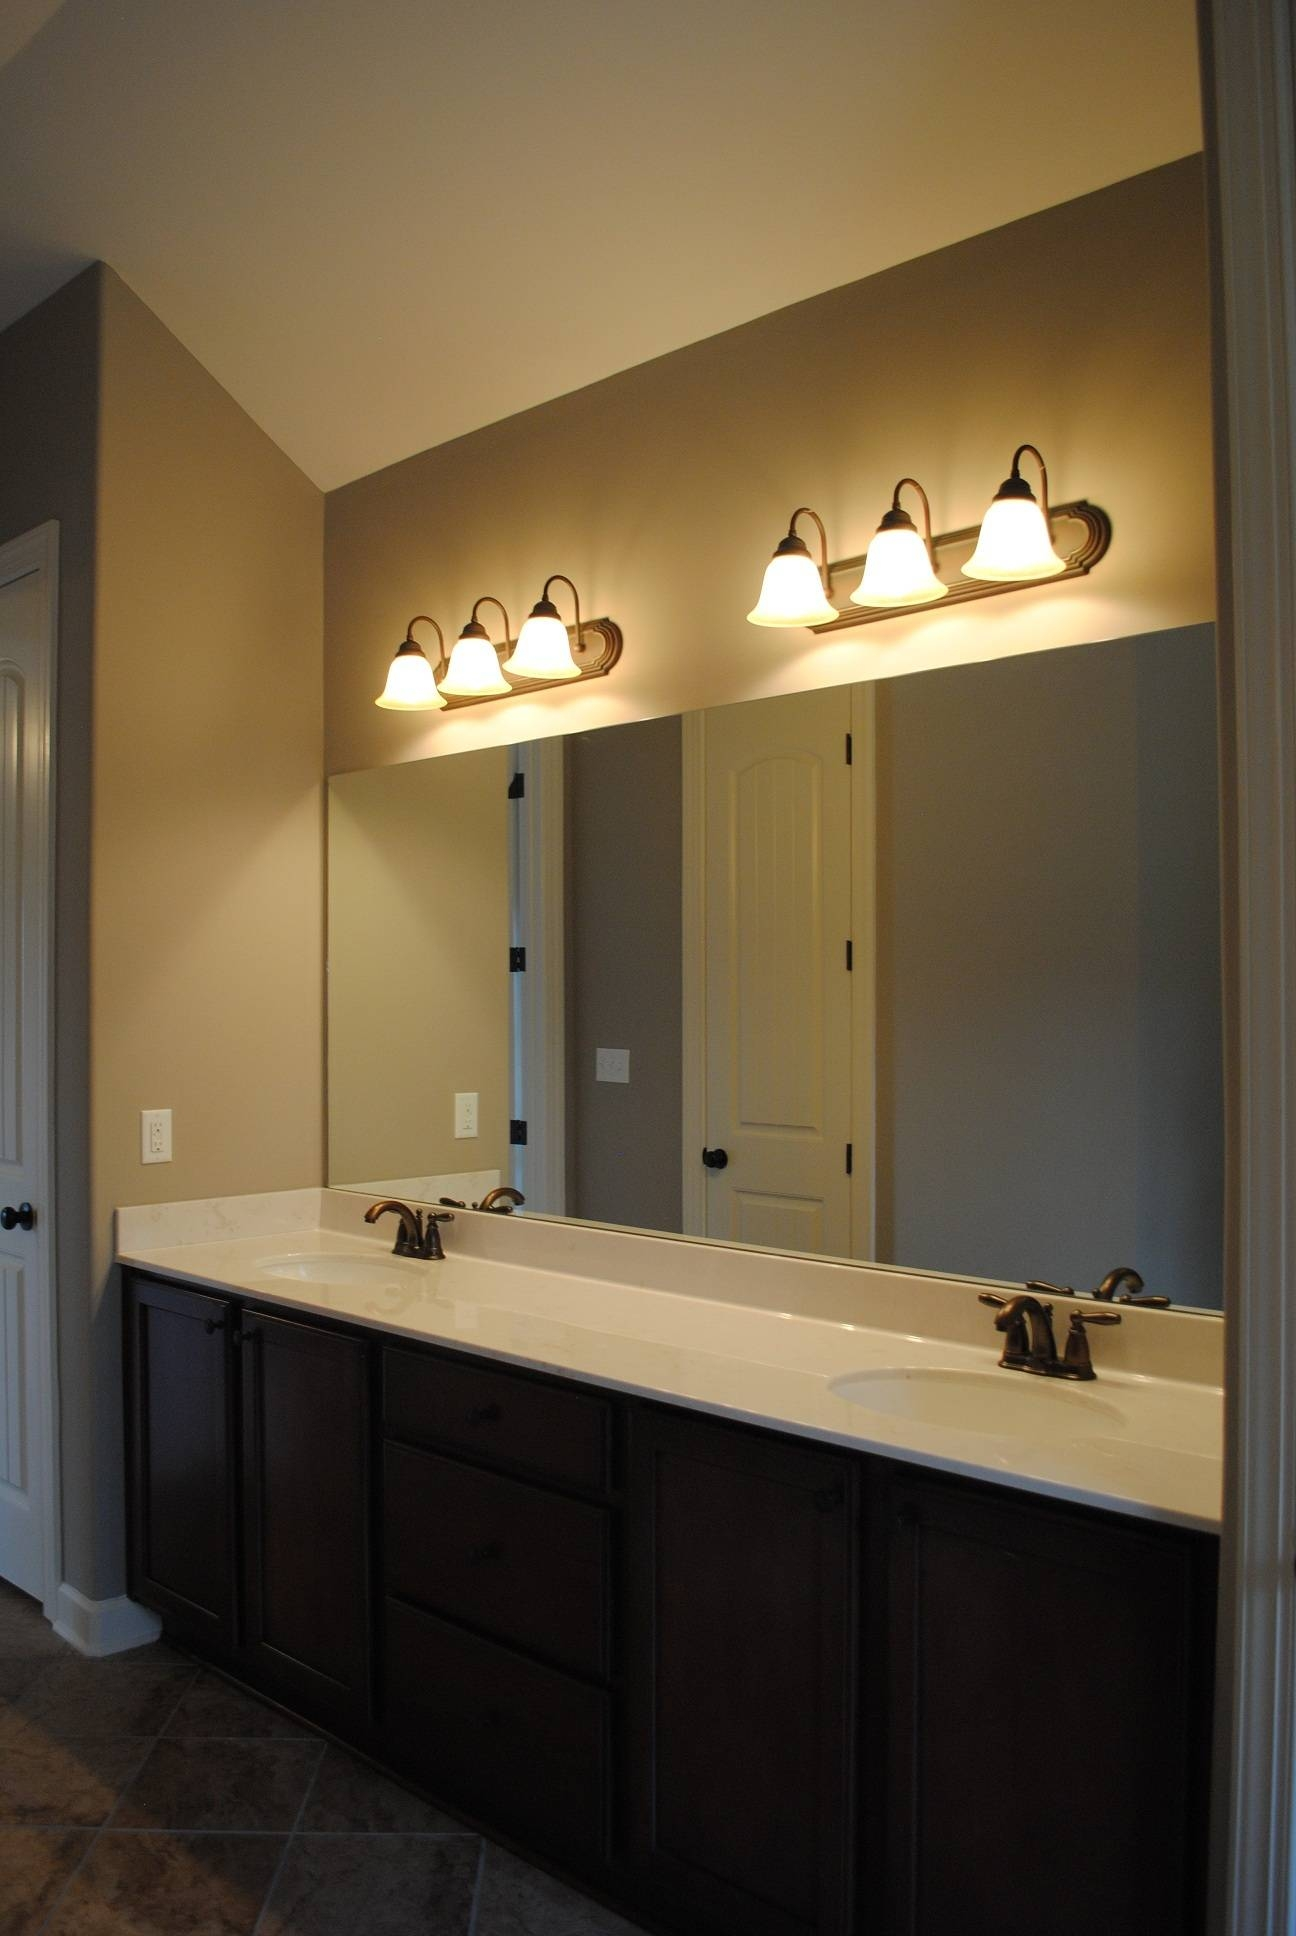 Lovable Bathroom Vanity Mirrors Ideas In Home Remodel Inspiration pertaining to Unusual Mirrors for Bathrooms (Image 22 of 25)